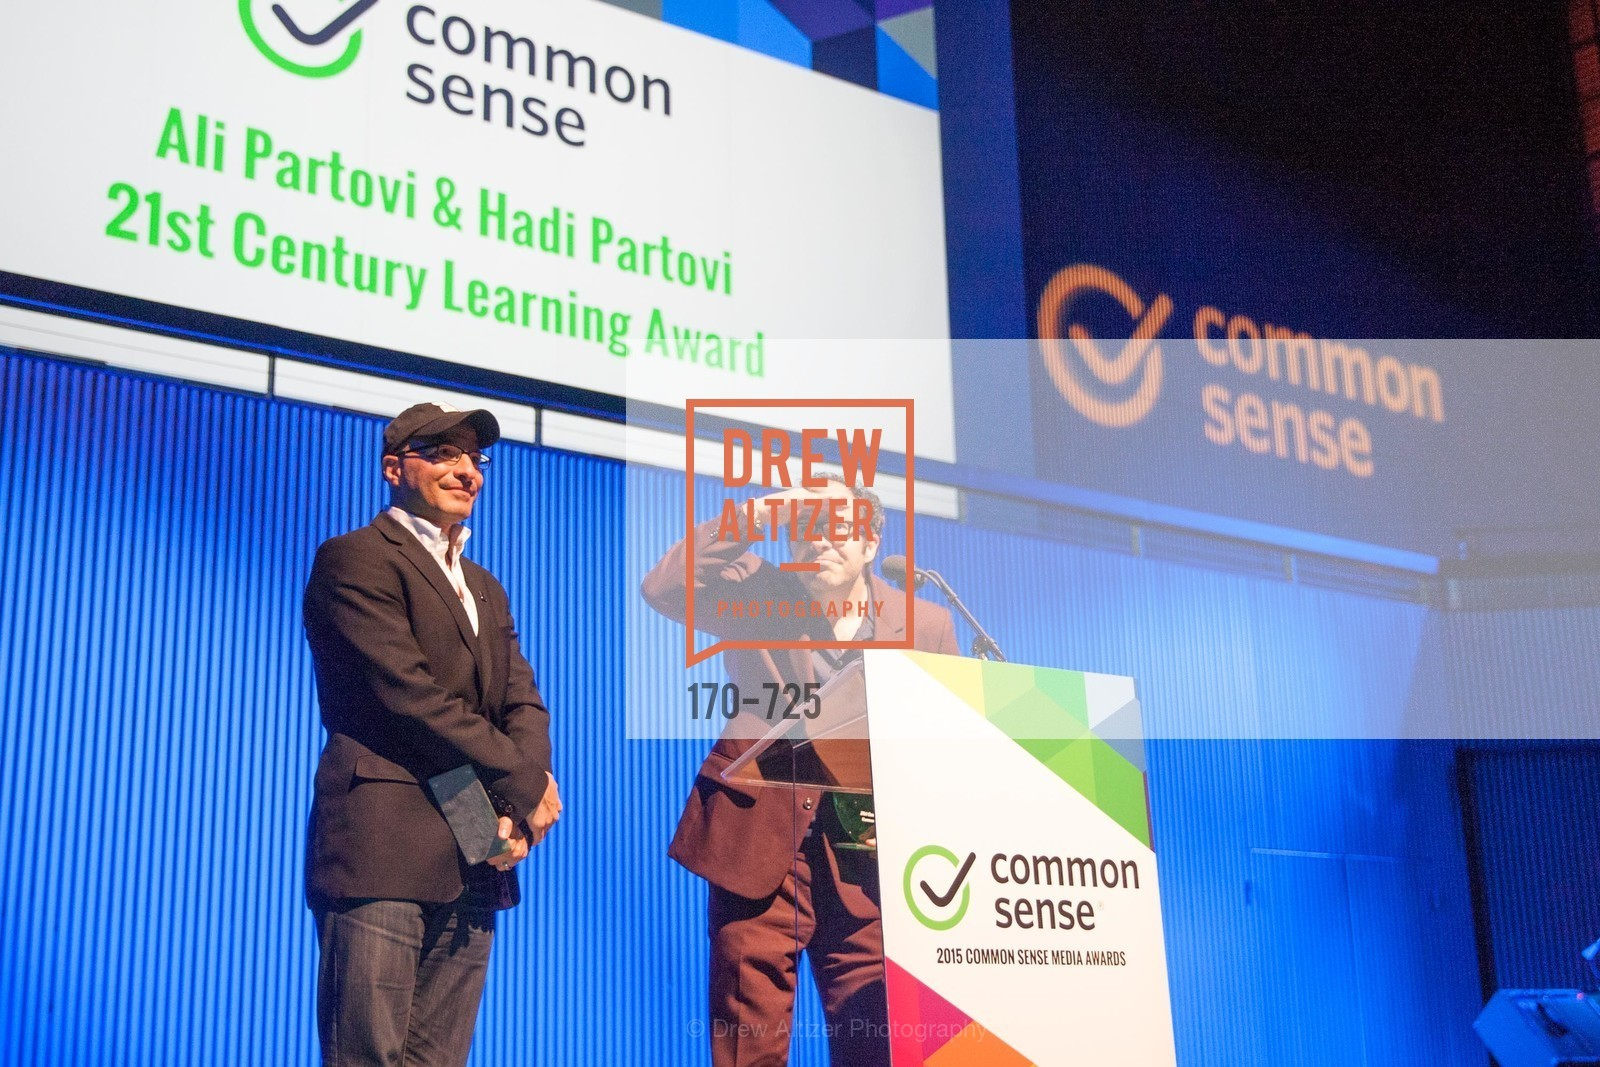 Hadi Partovi, Ali Partovi, COMMON SENSE Media Awards 2015, US, May 13th, 2015,Drew Altizer, Drew Altizer Photography, full-service agency, private events, San Francisco photographer, photographer california